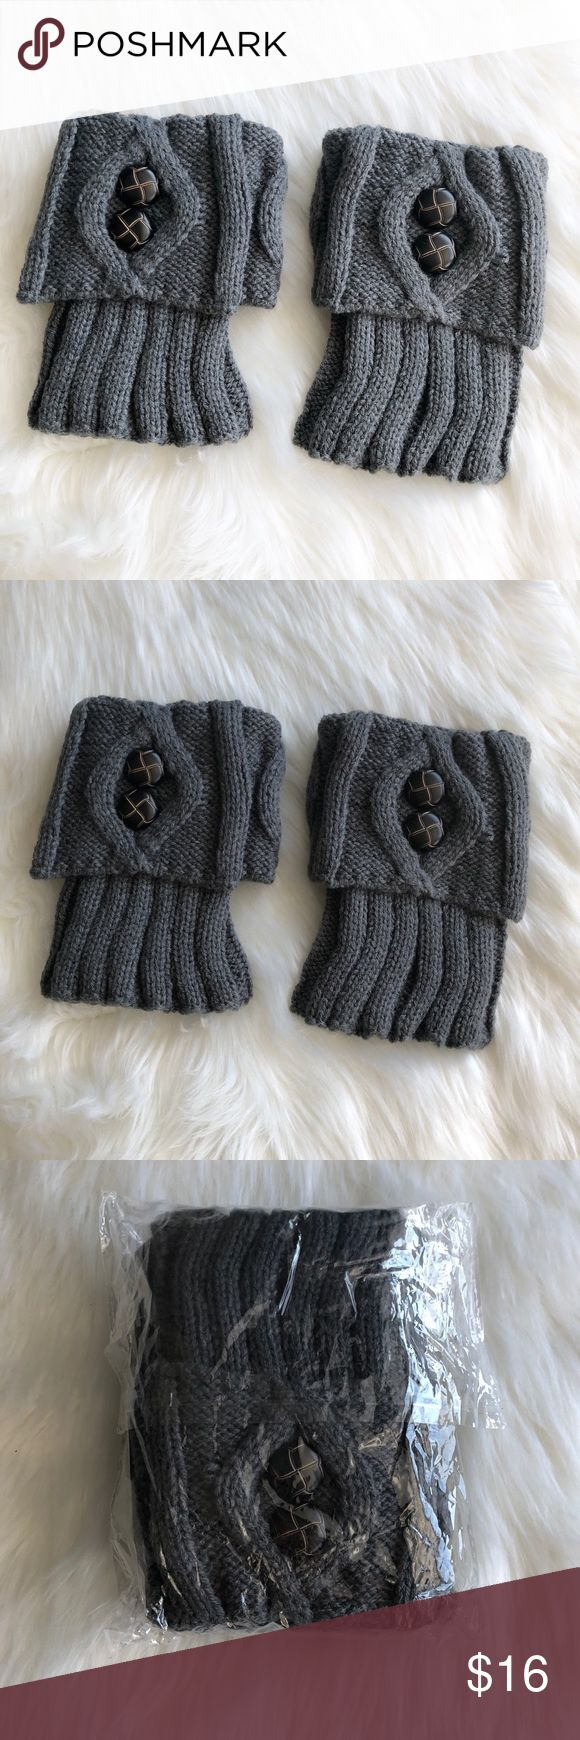 Best 25 knitted boot cuffs ideas on pinterest boot toppers best 25 knitted boot cuffs ideas on pinterest boot toppers boot socks and boot cuffs bankloansurffo Images